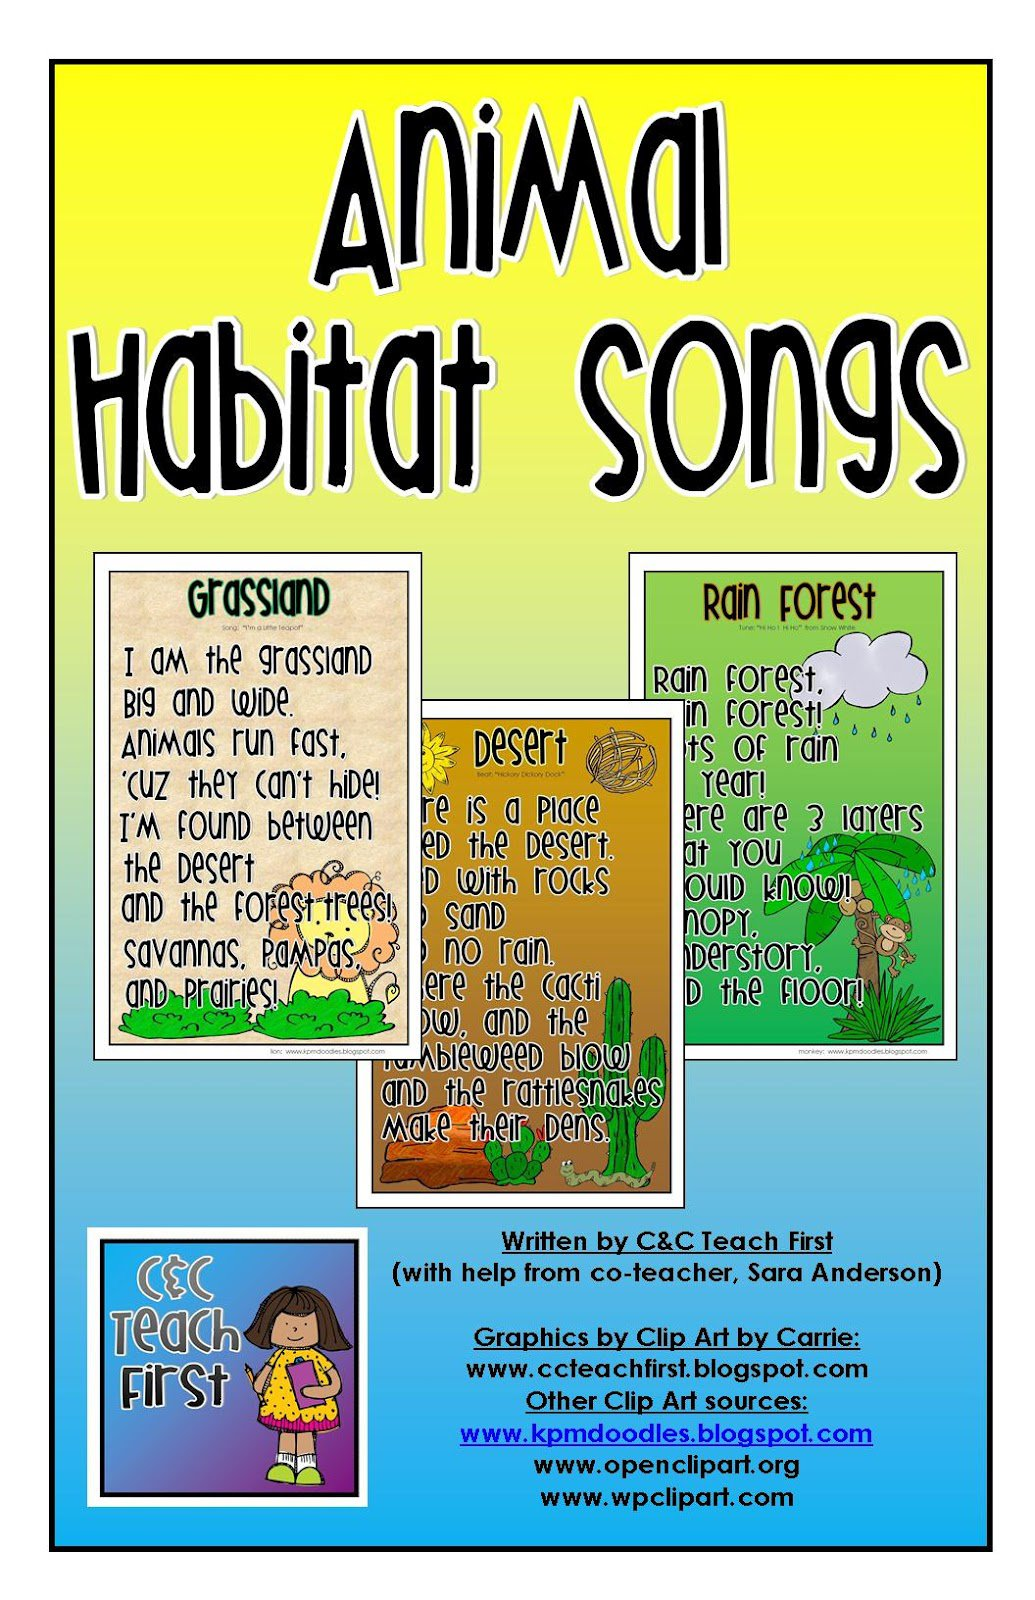 Quotes About Animal Habitat 15 Quotes